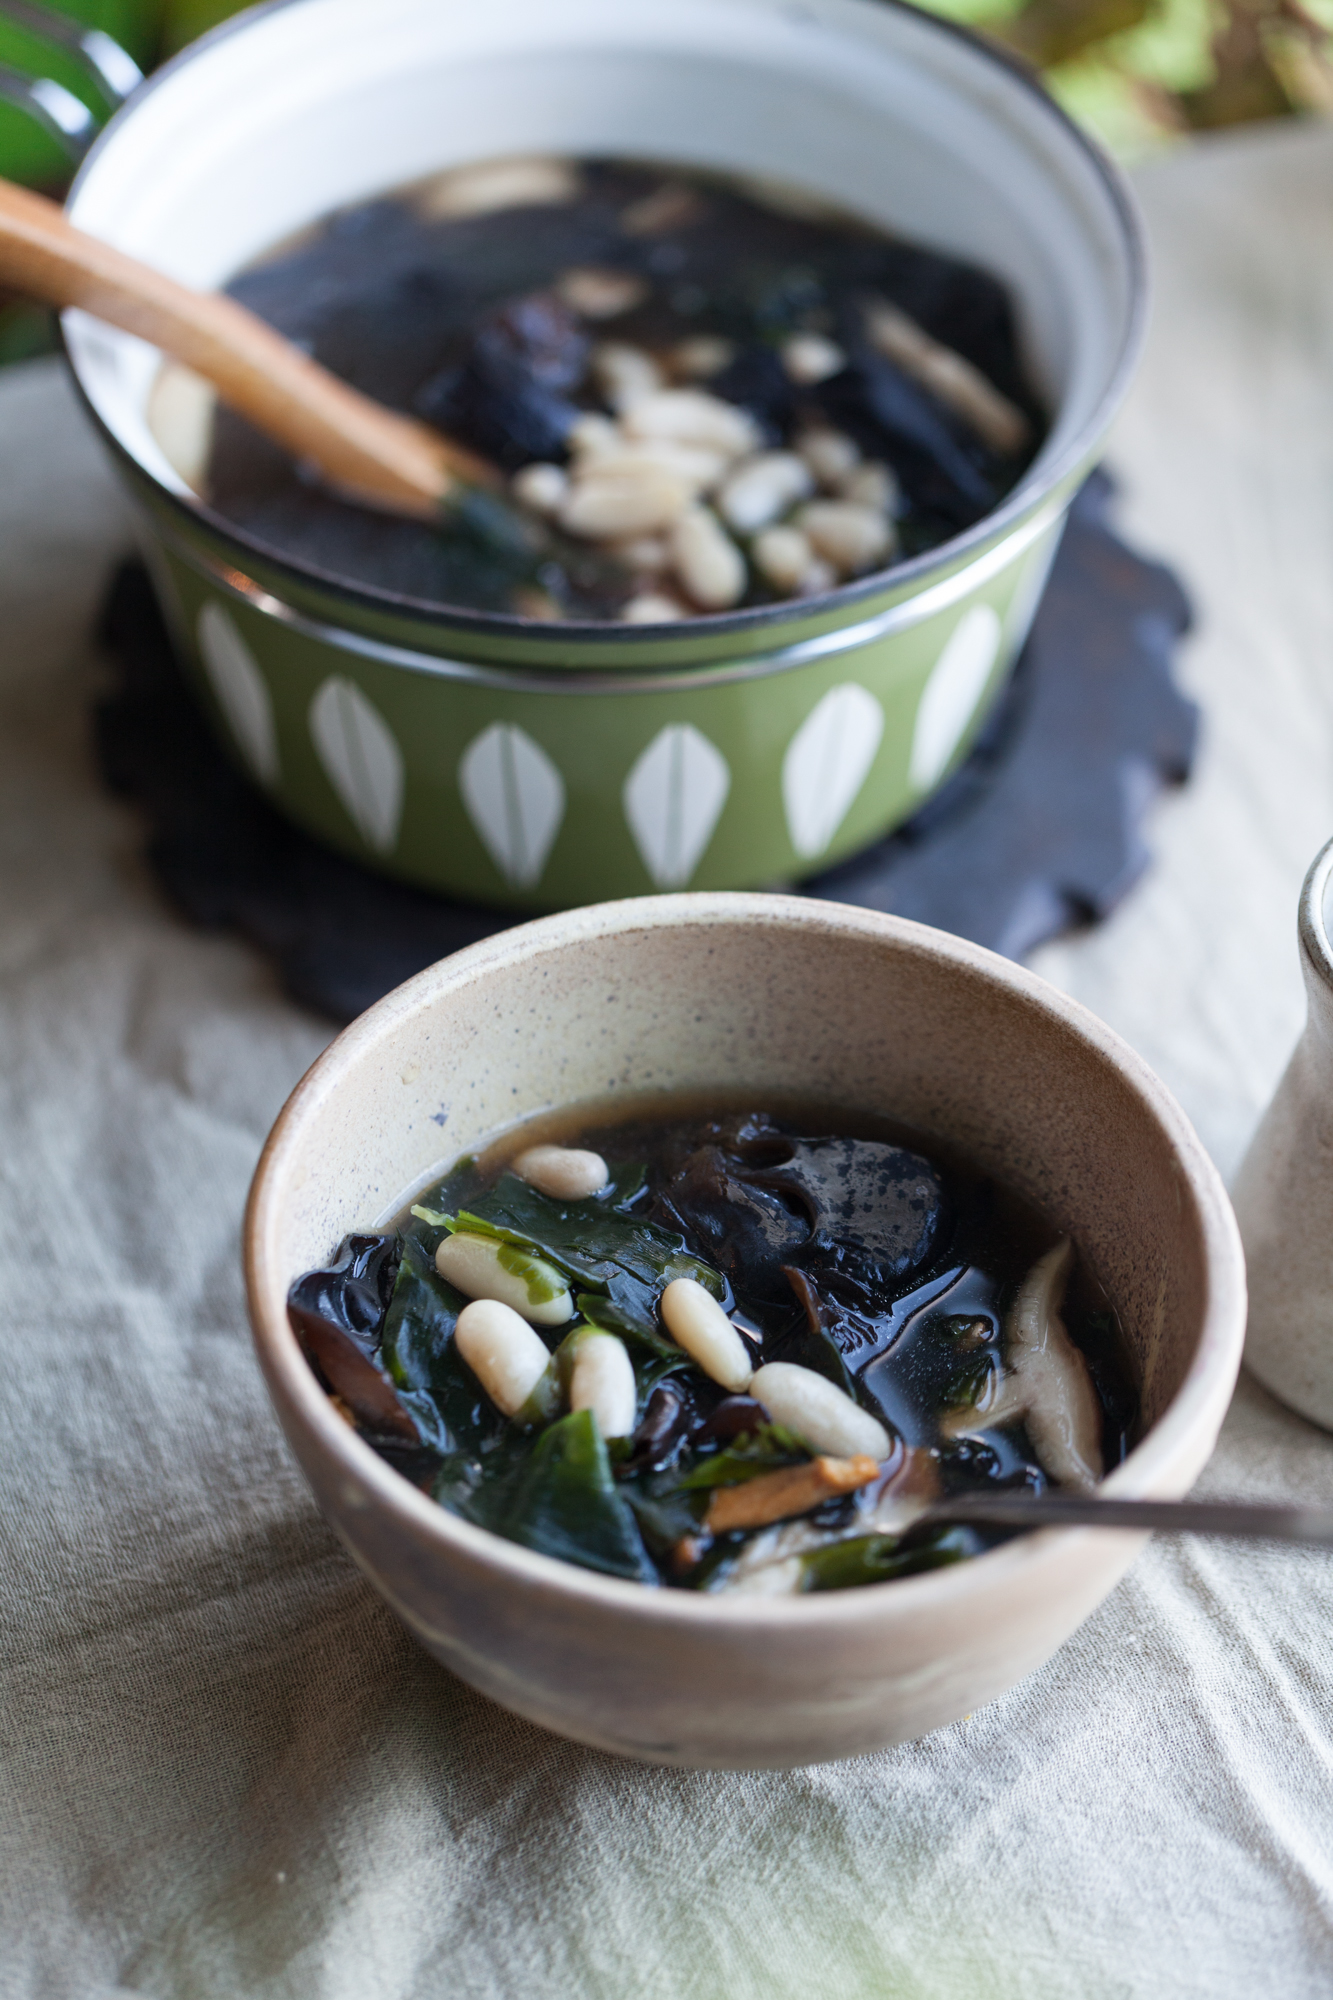 Both the wakame seaweed and the wood ear mushrooms give this soup an unbeatable texture.